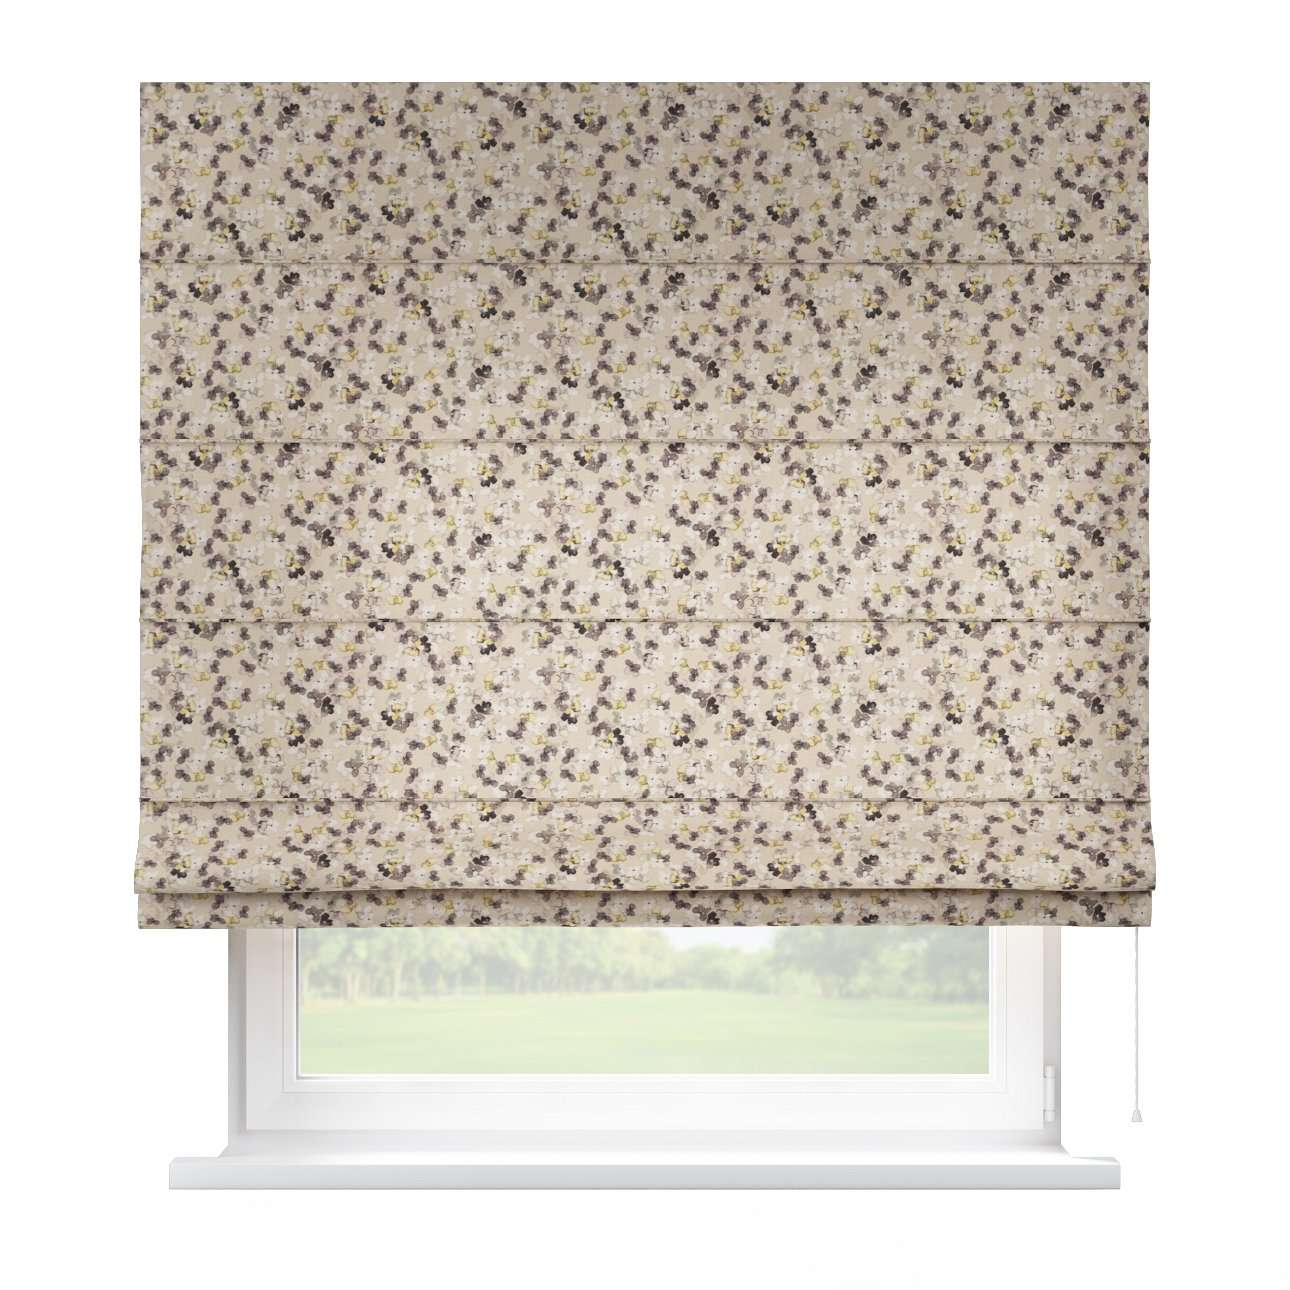 Capri roman blind 80 x 170 cm (31.5 x 67 inch) in collection Londres, fabric: 140-48